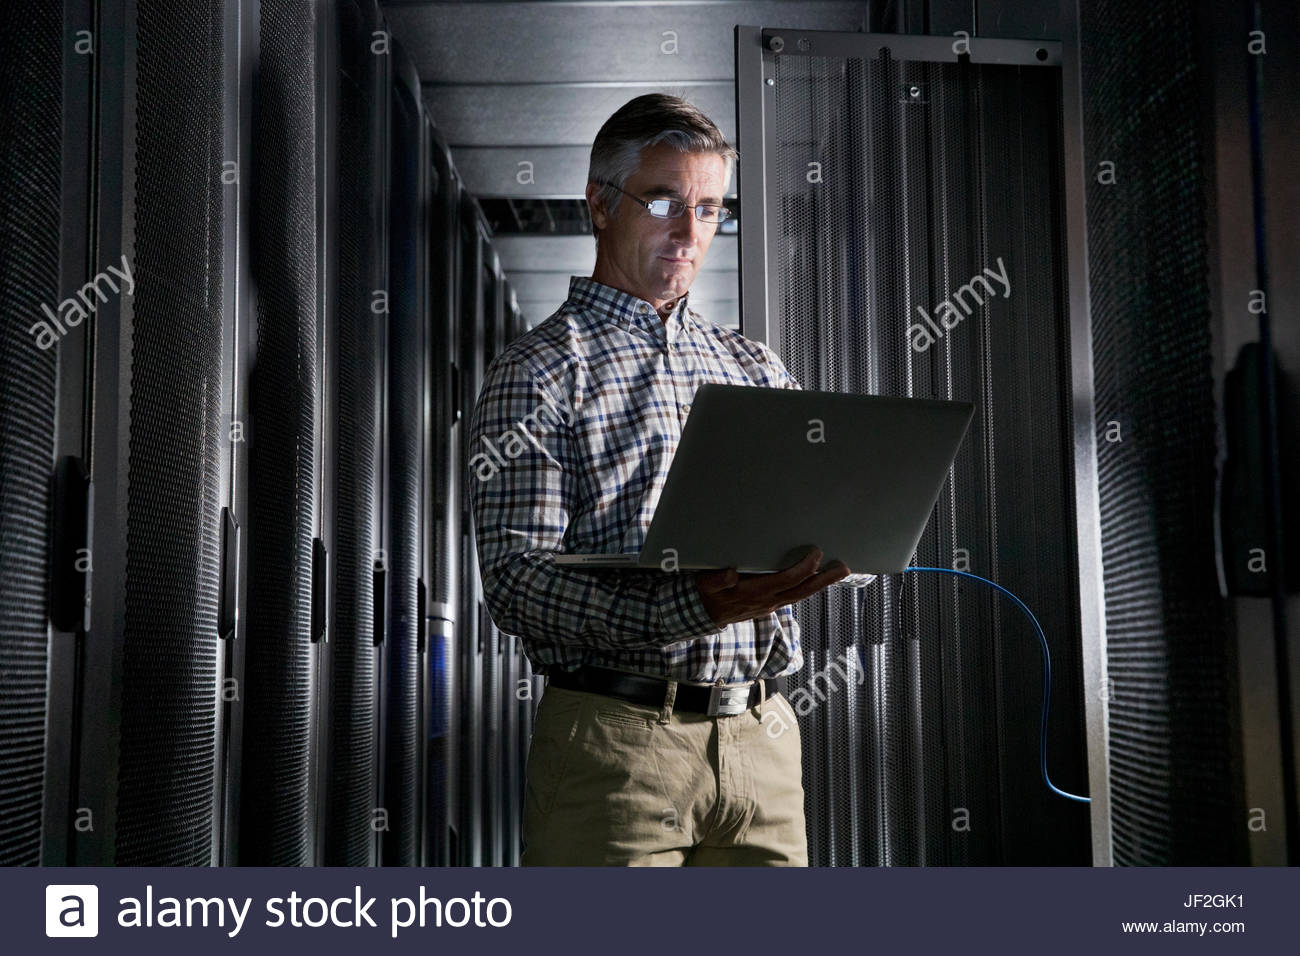 Service Technician With Laptop Working In Secure Data Centre - Stock Image